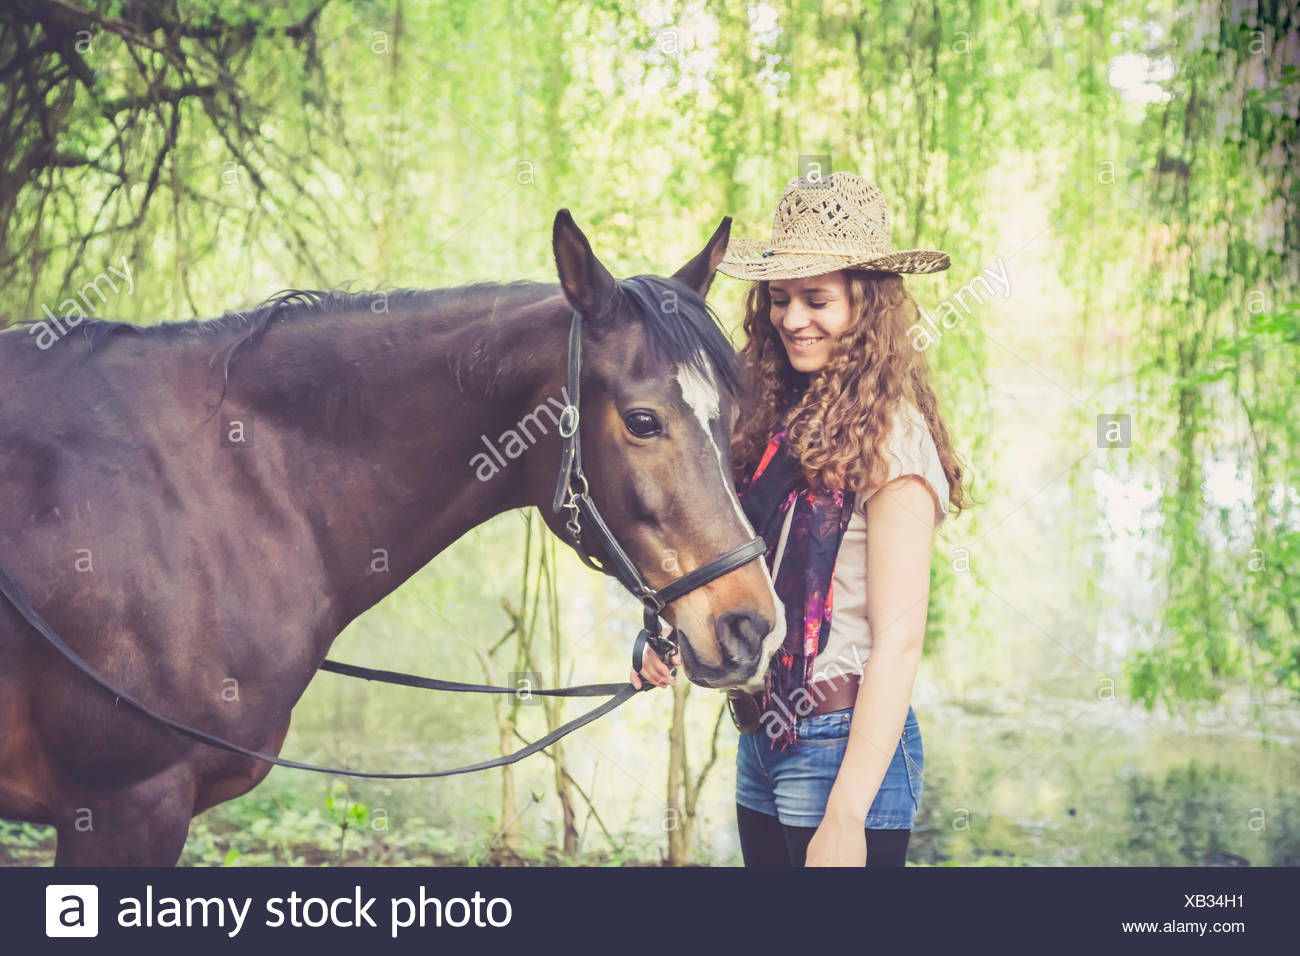 Smiling young woman with Arabian horse - Stock Image